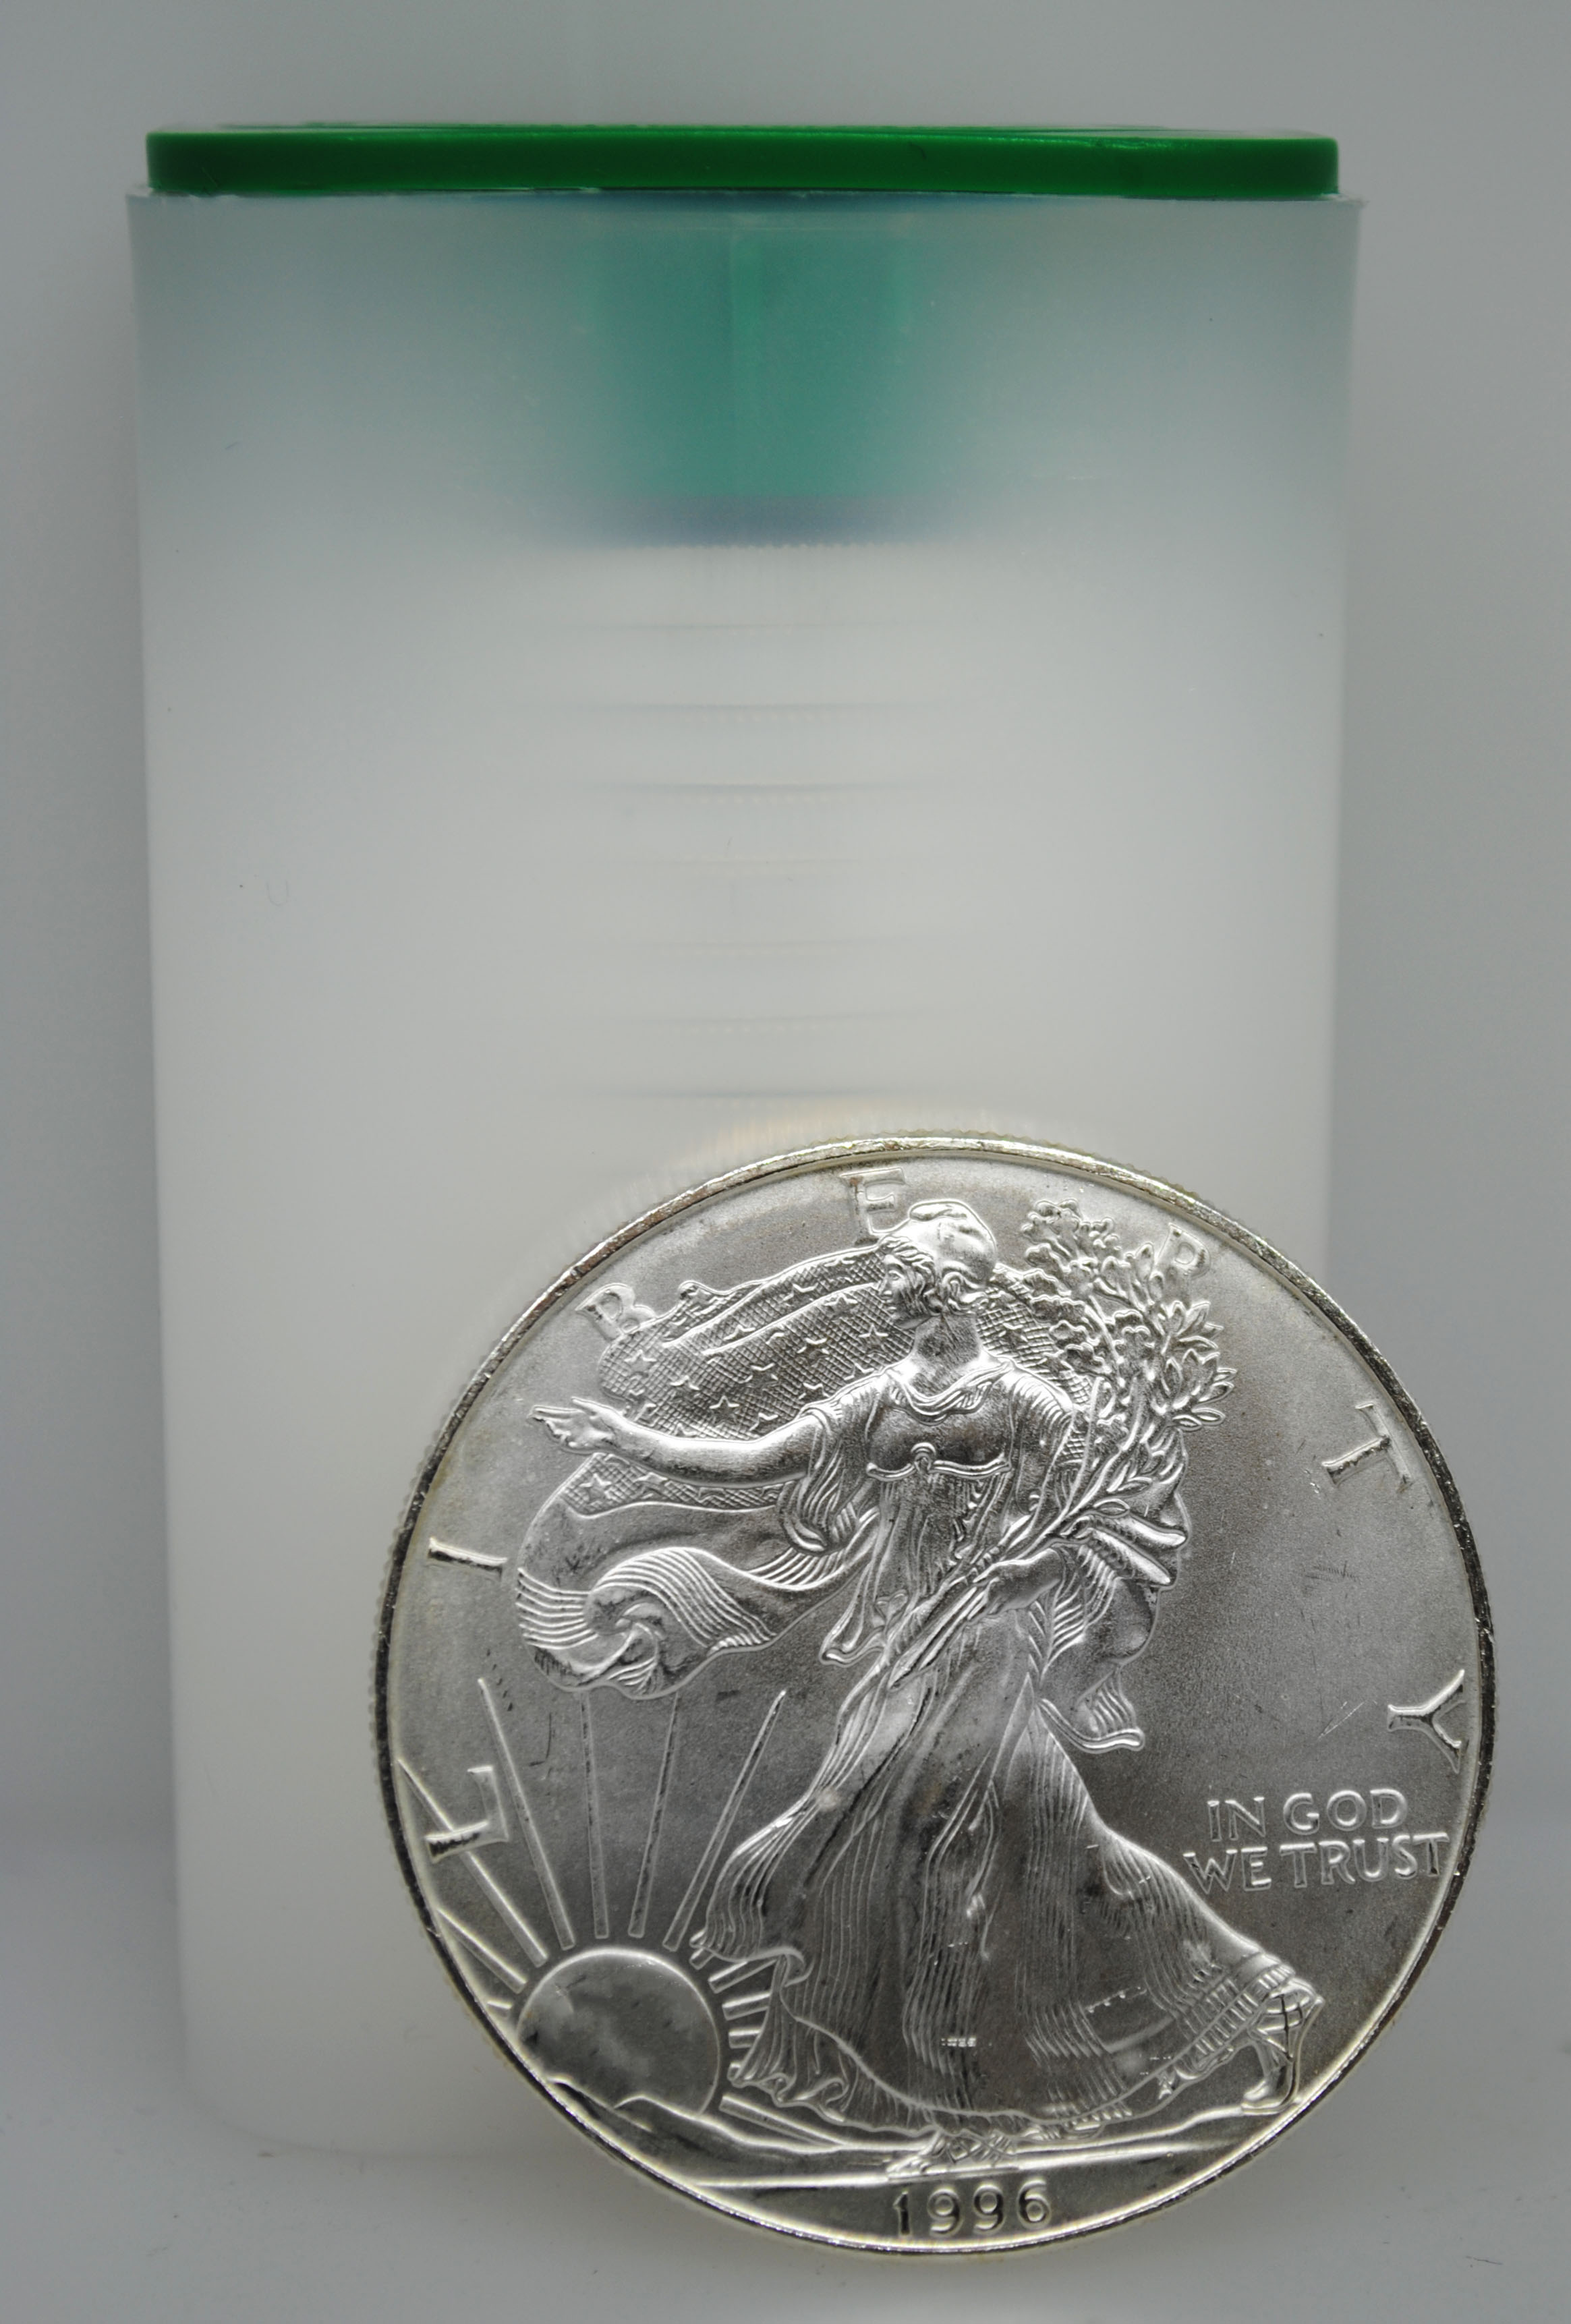 1996 Uncirculated Silver Eagles